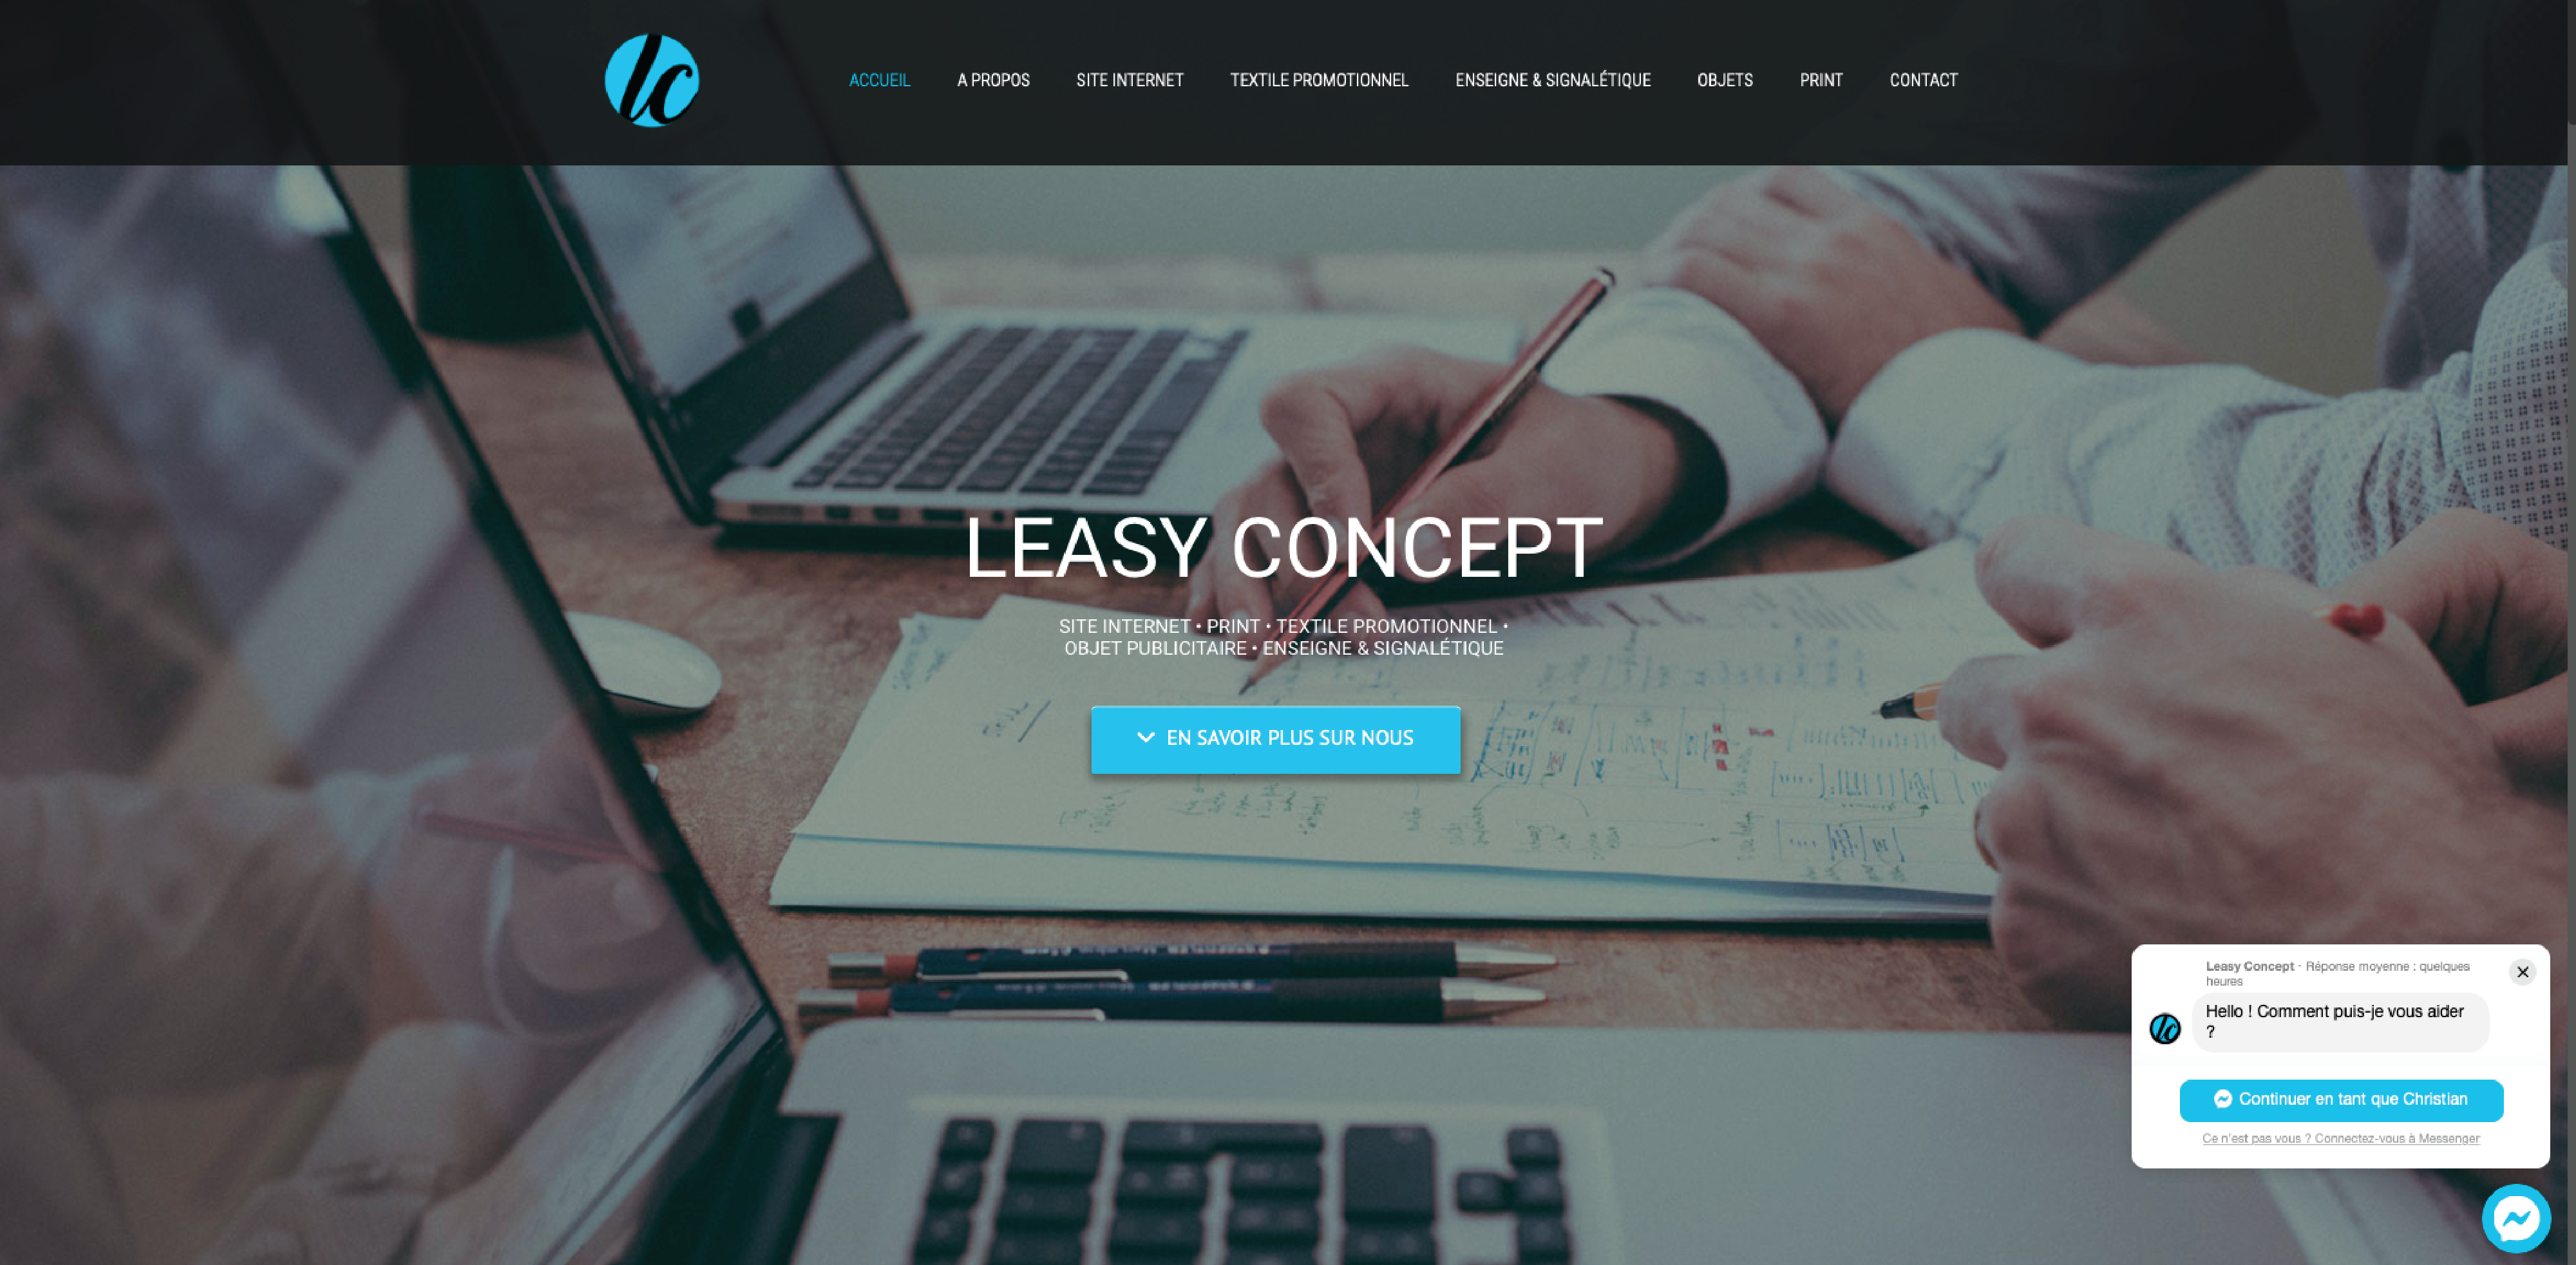 leasy concept_leasy concept, louer mon site, location de site, vente de site internet, site web, lyon, rhone alpes, creation de site internet